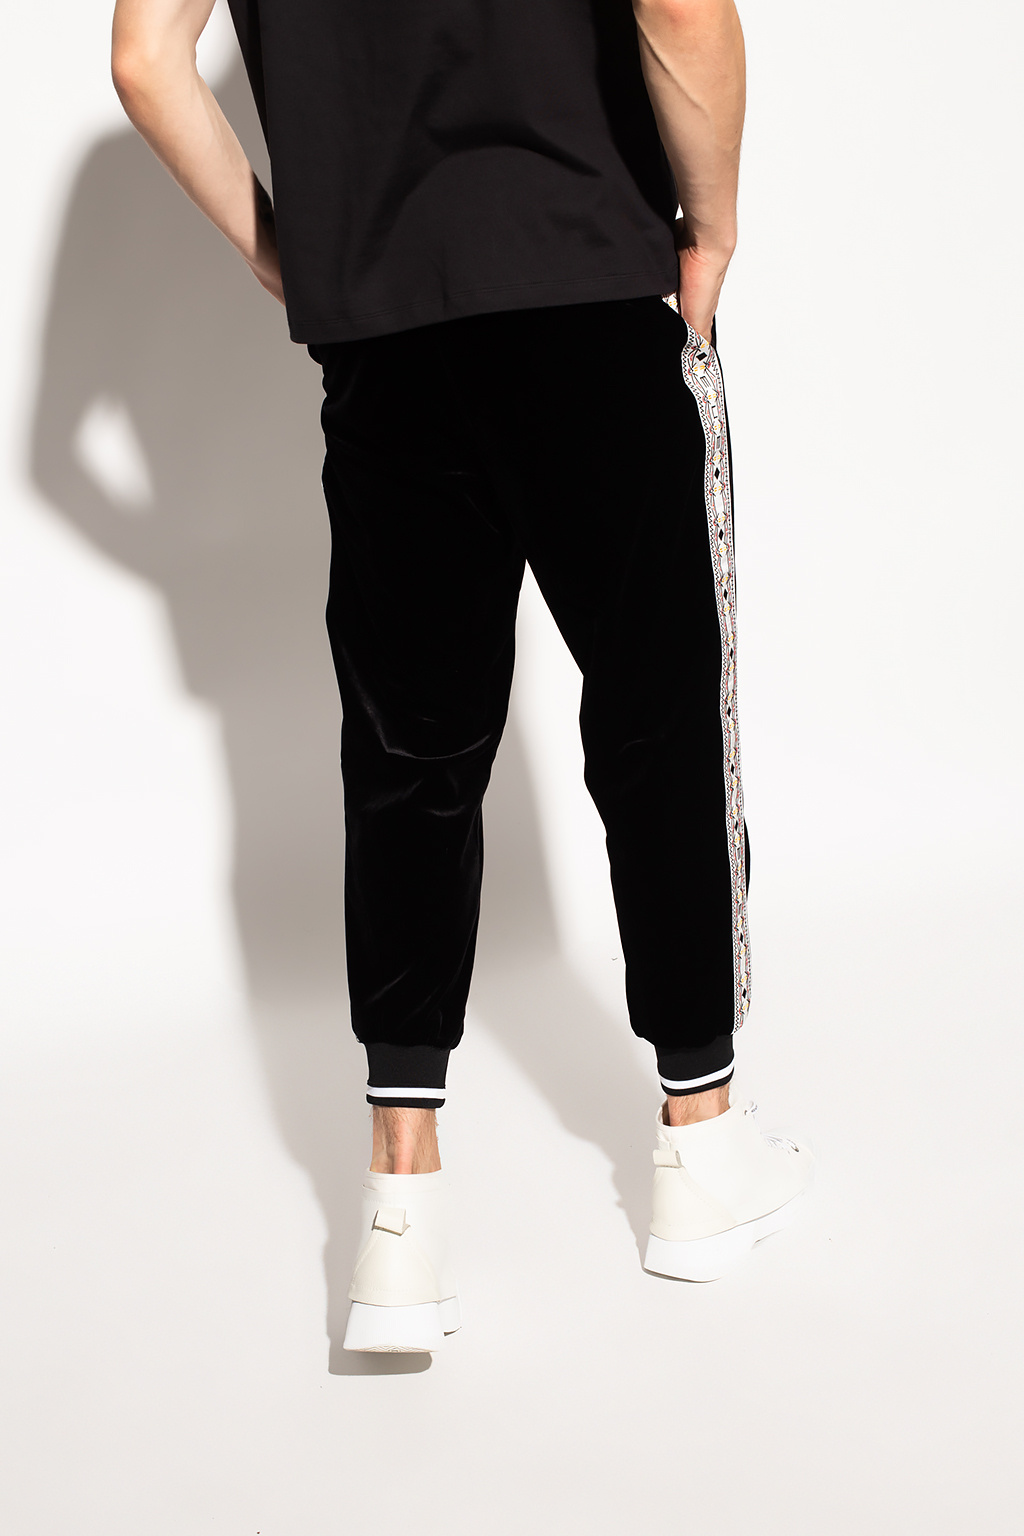 MCM Loose-fitting trousers